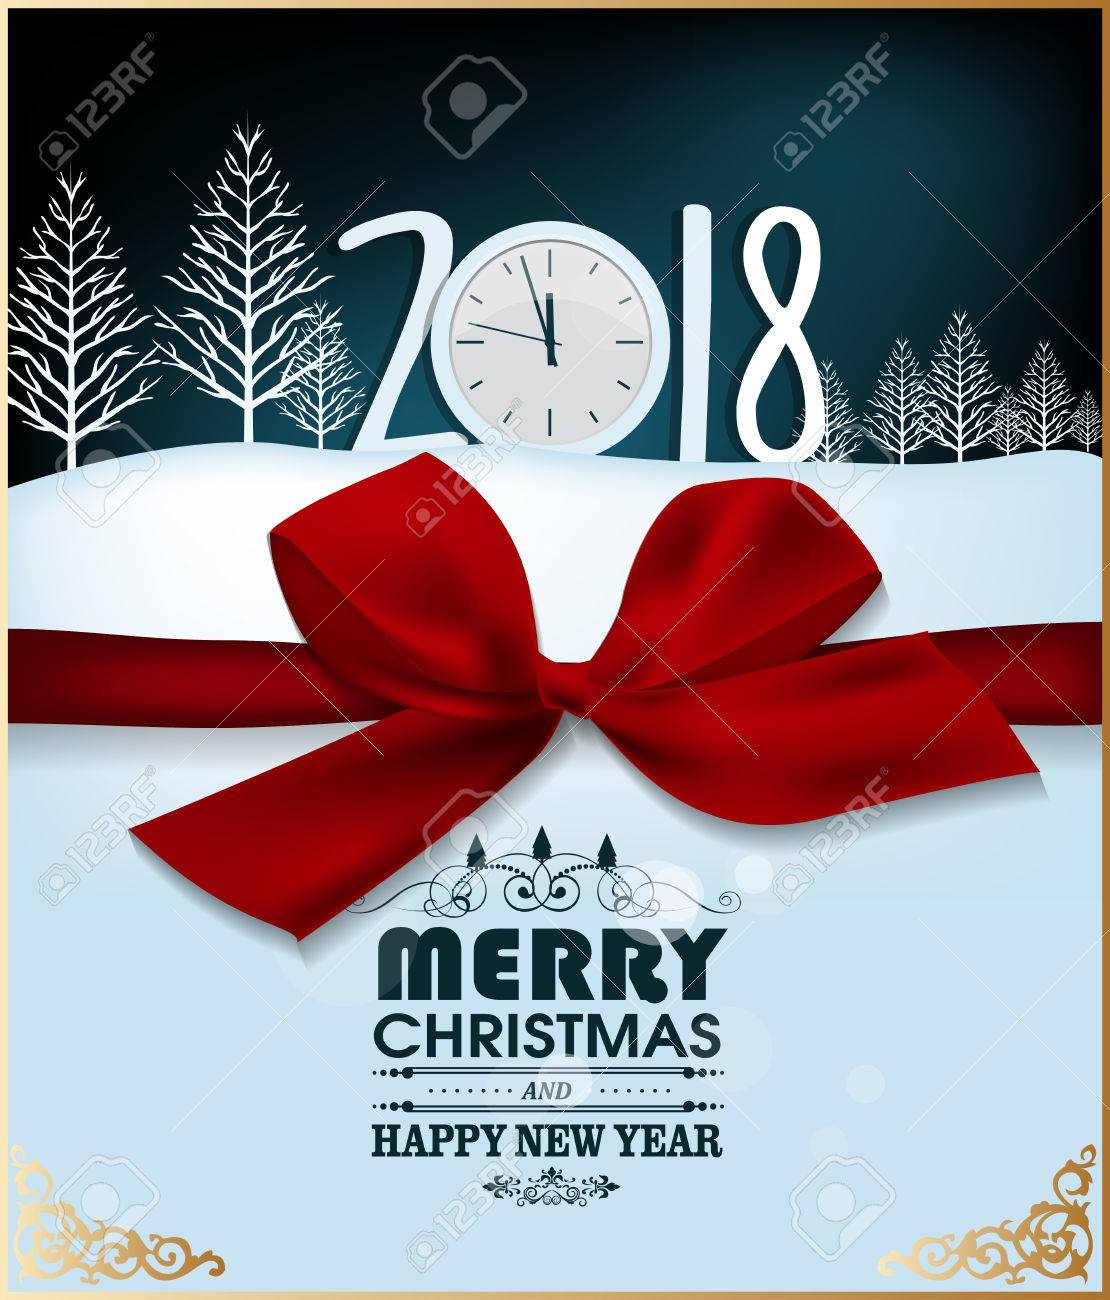 happy new year 2018 greeting card and merry christmas stock vector 87874142